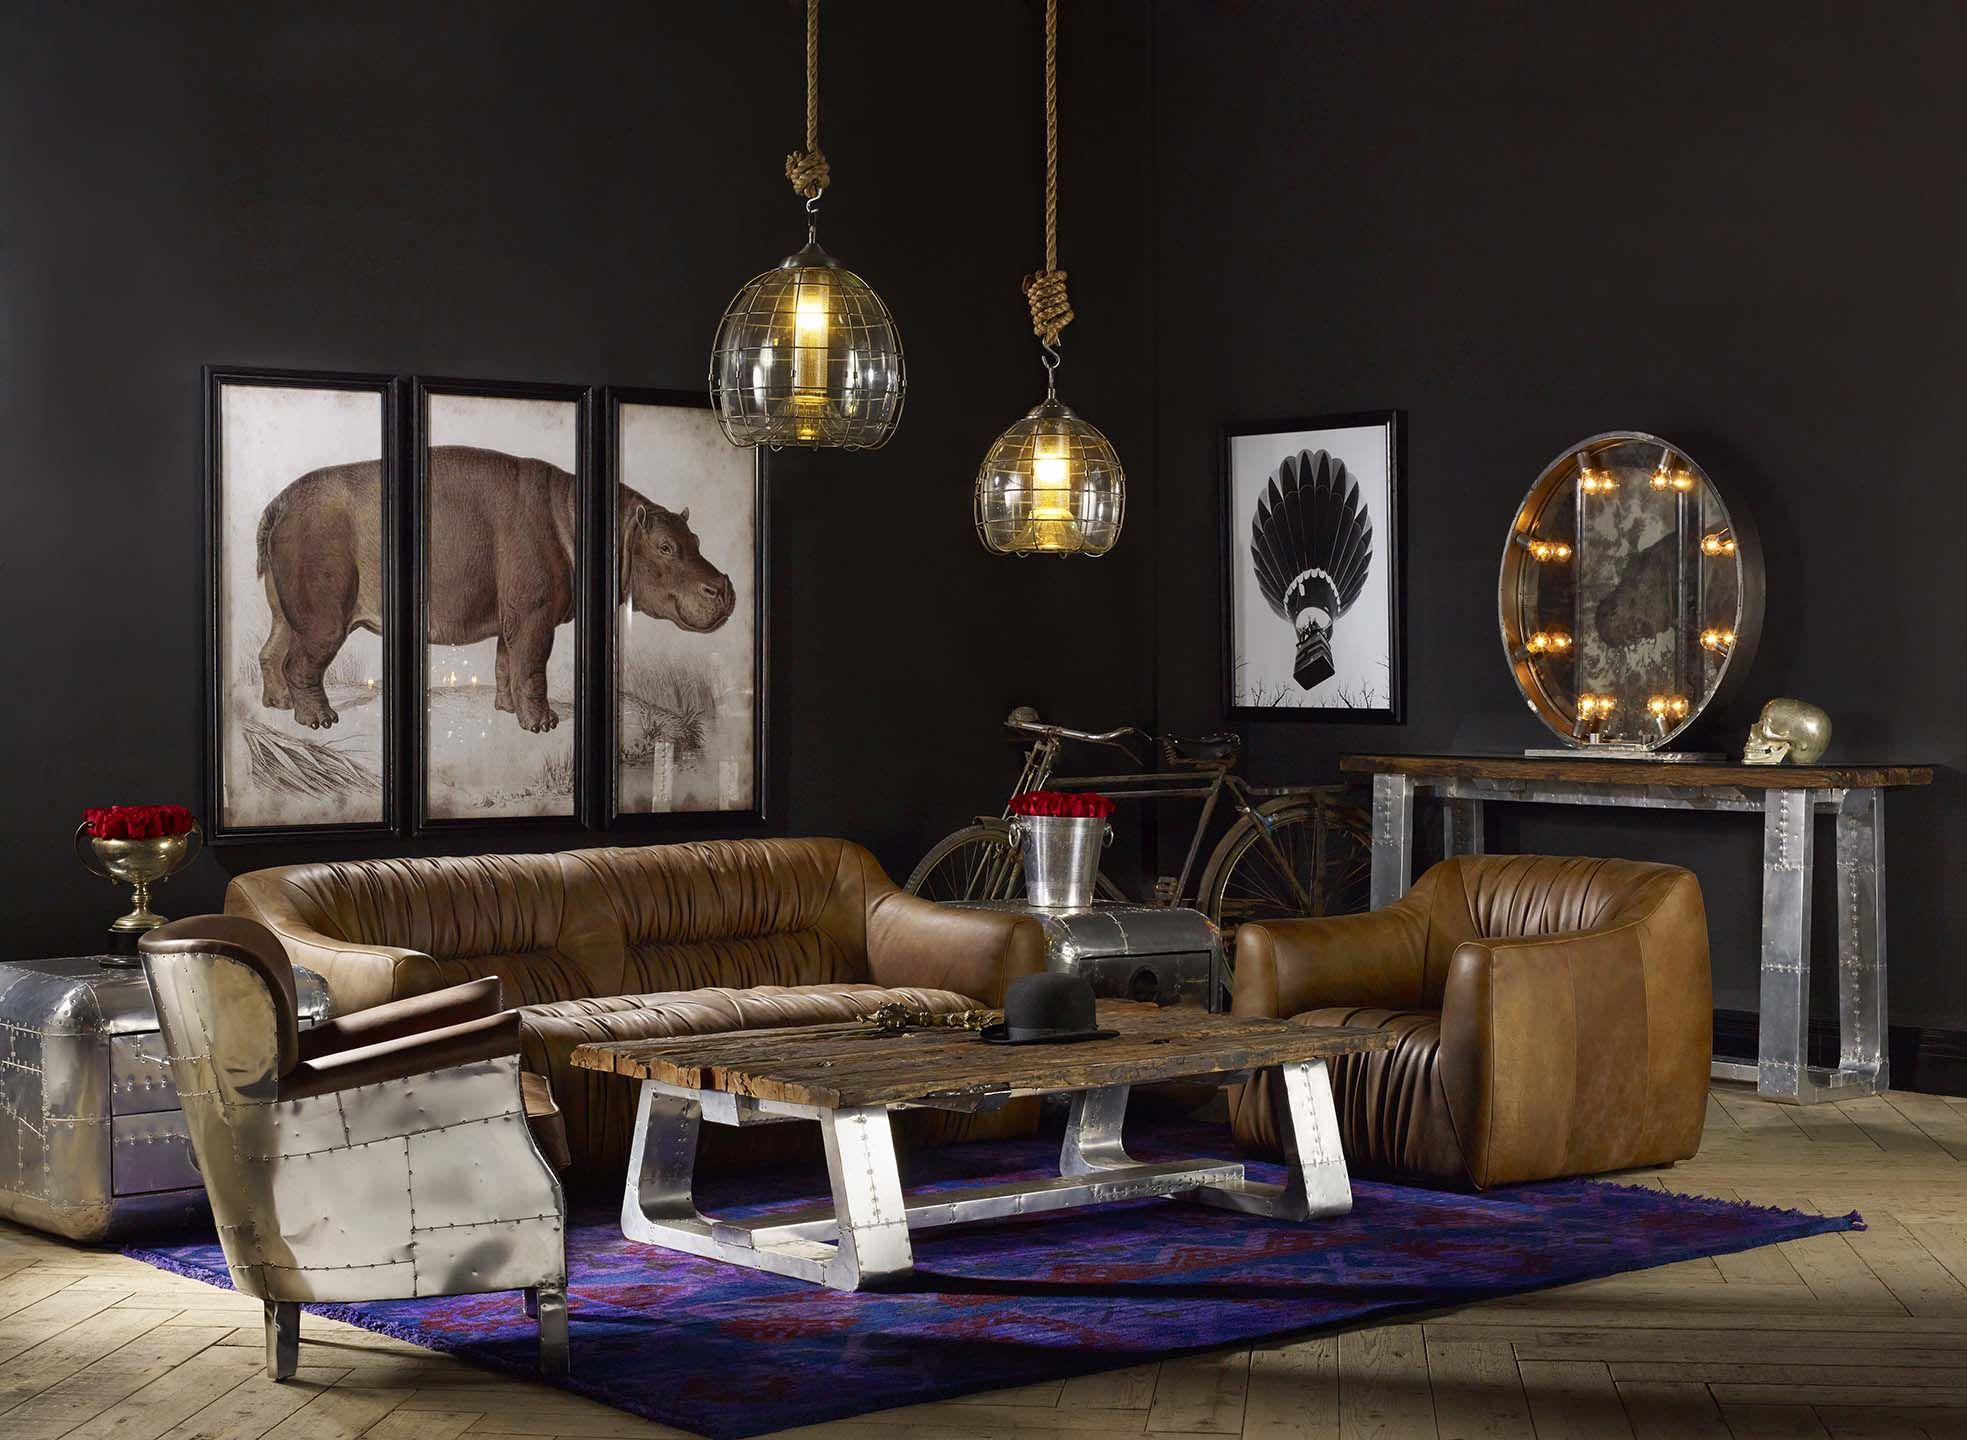 Adventurer ruffed living timothyoulton usa en products themes also furniture collection rh pinterest